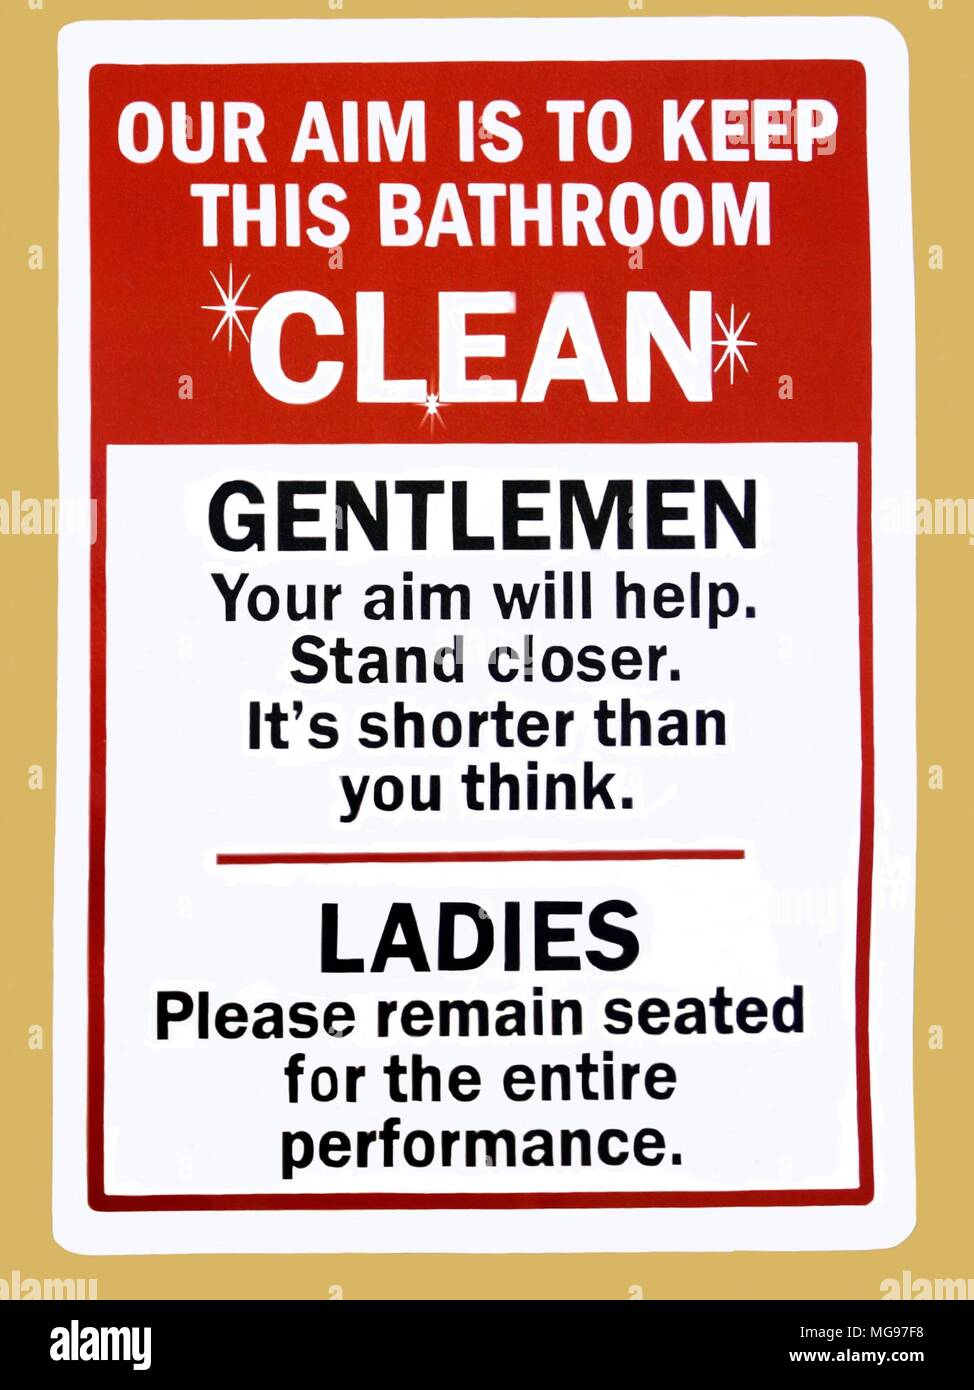 An instruction sign advising gentleman and ladies how to